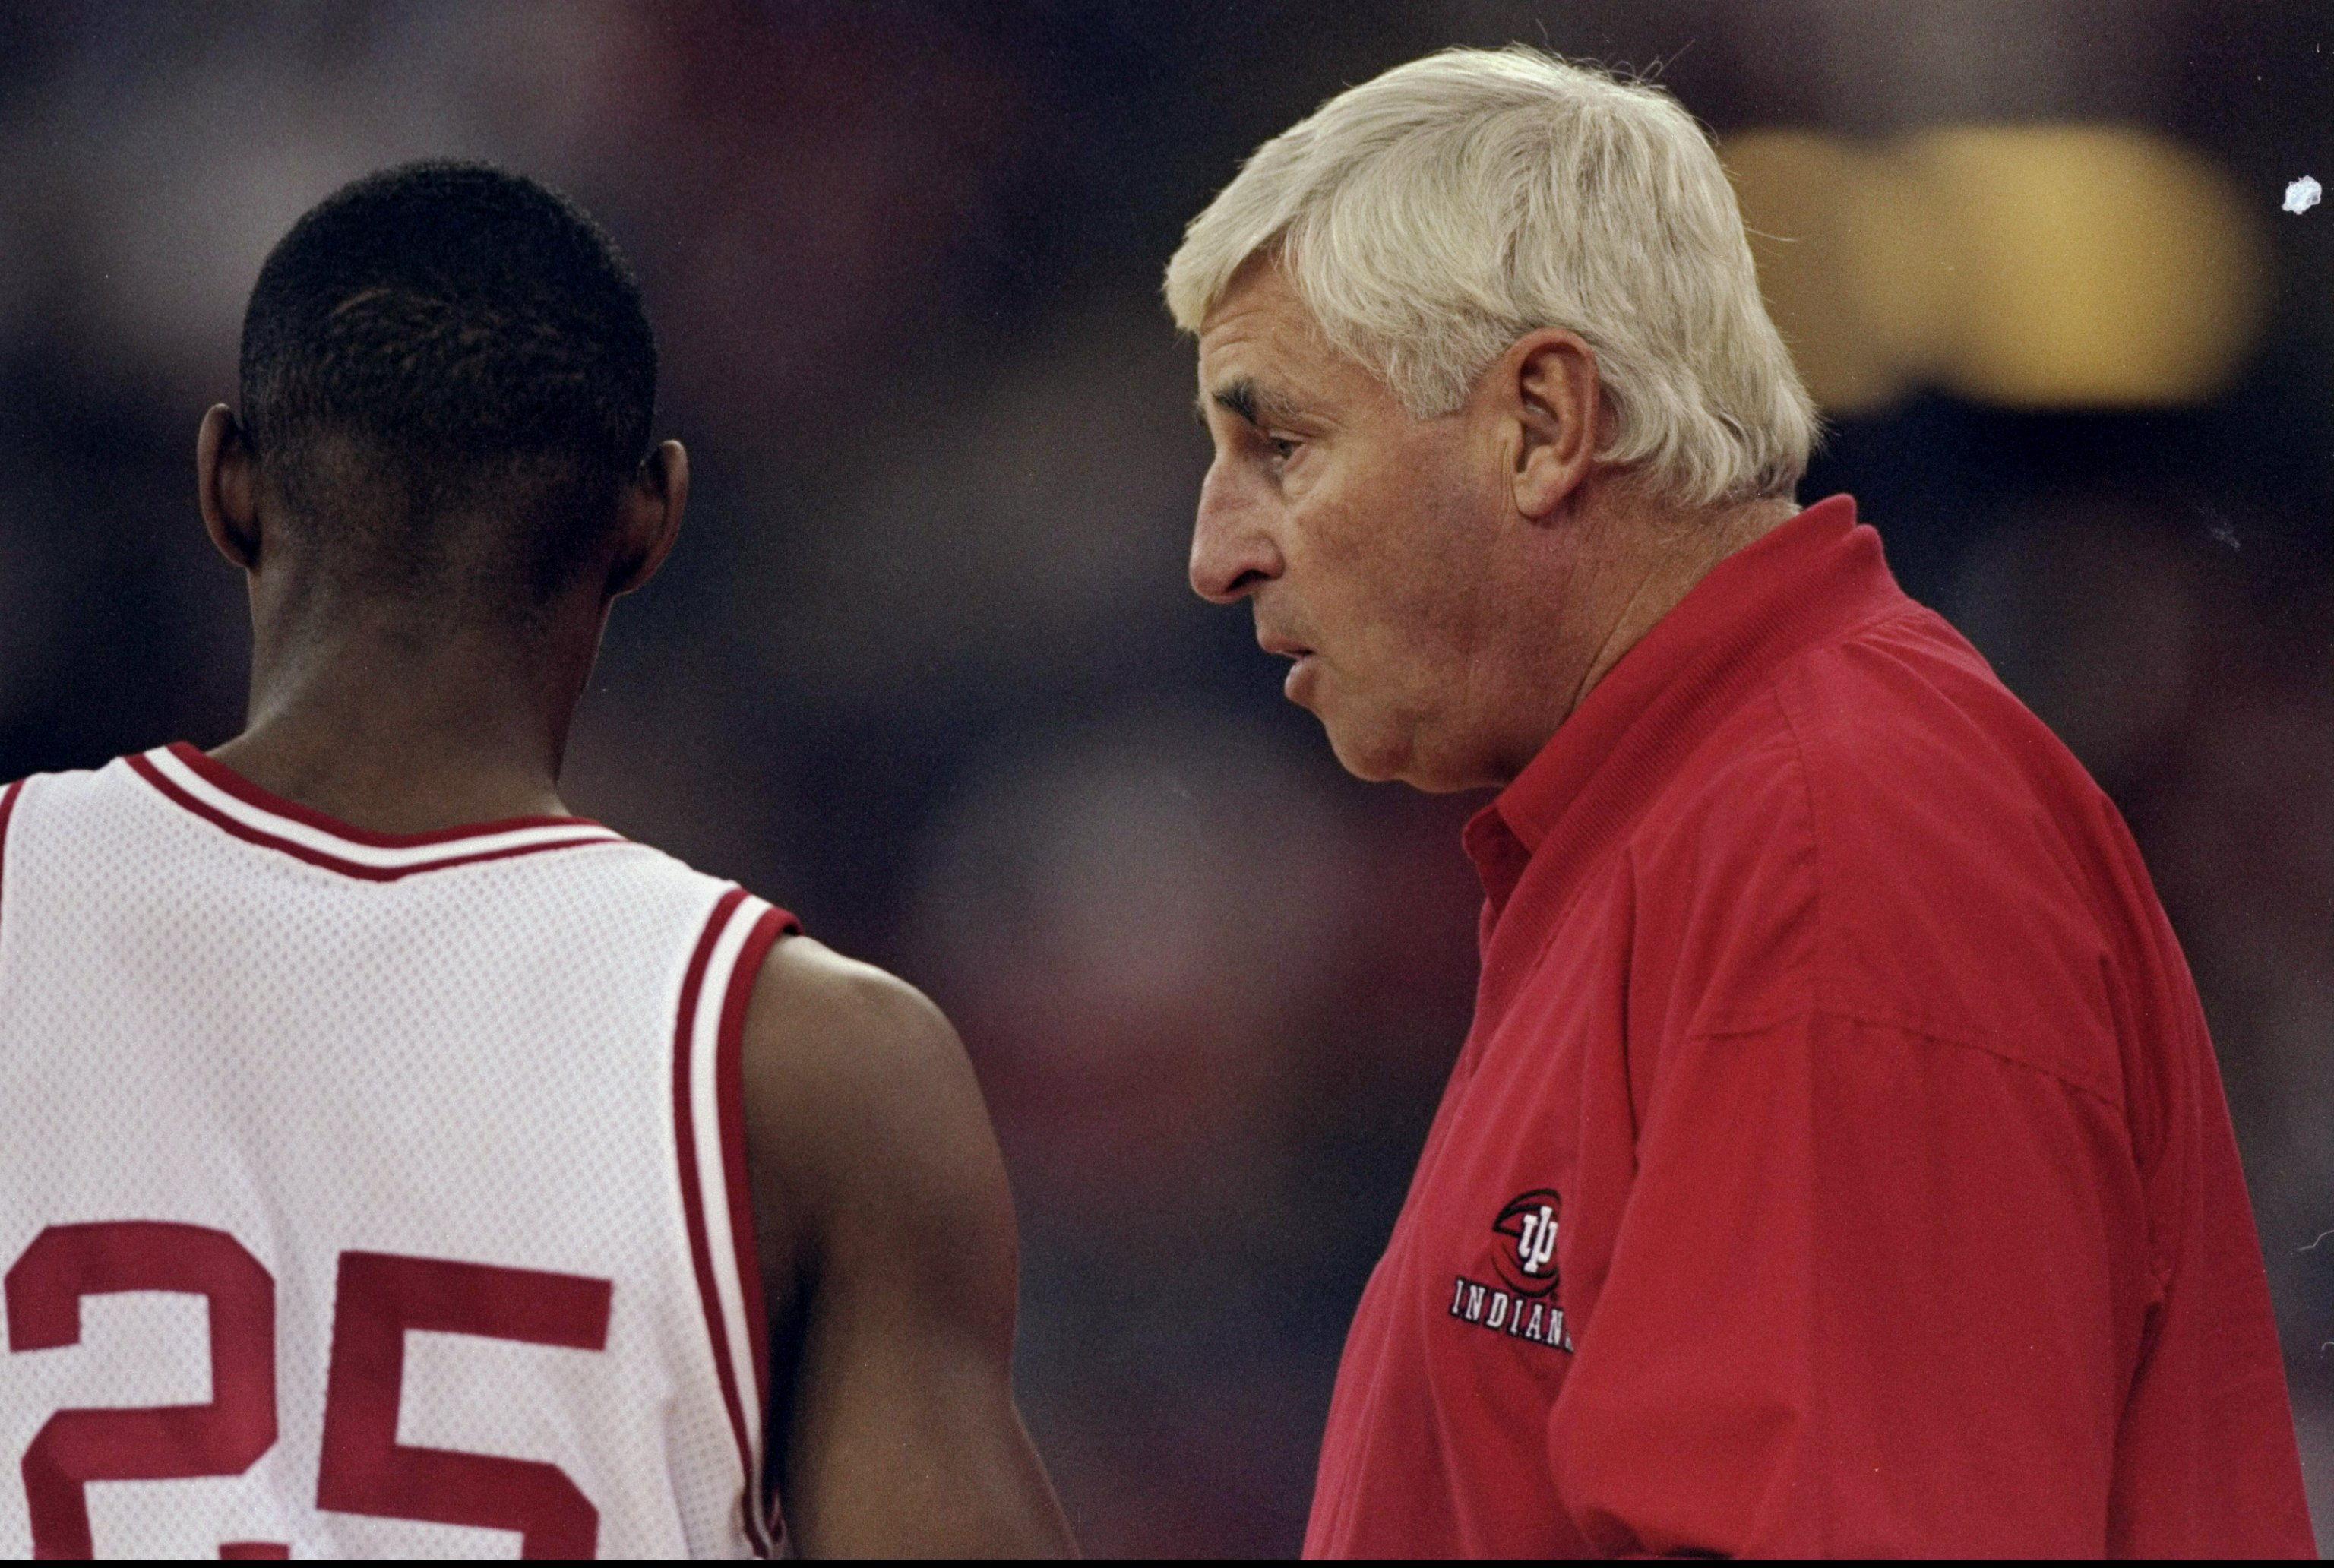 The greatest coach of the 70s, Indiana's Bobby Knight, the innovator of the motion offense